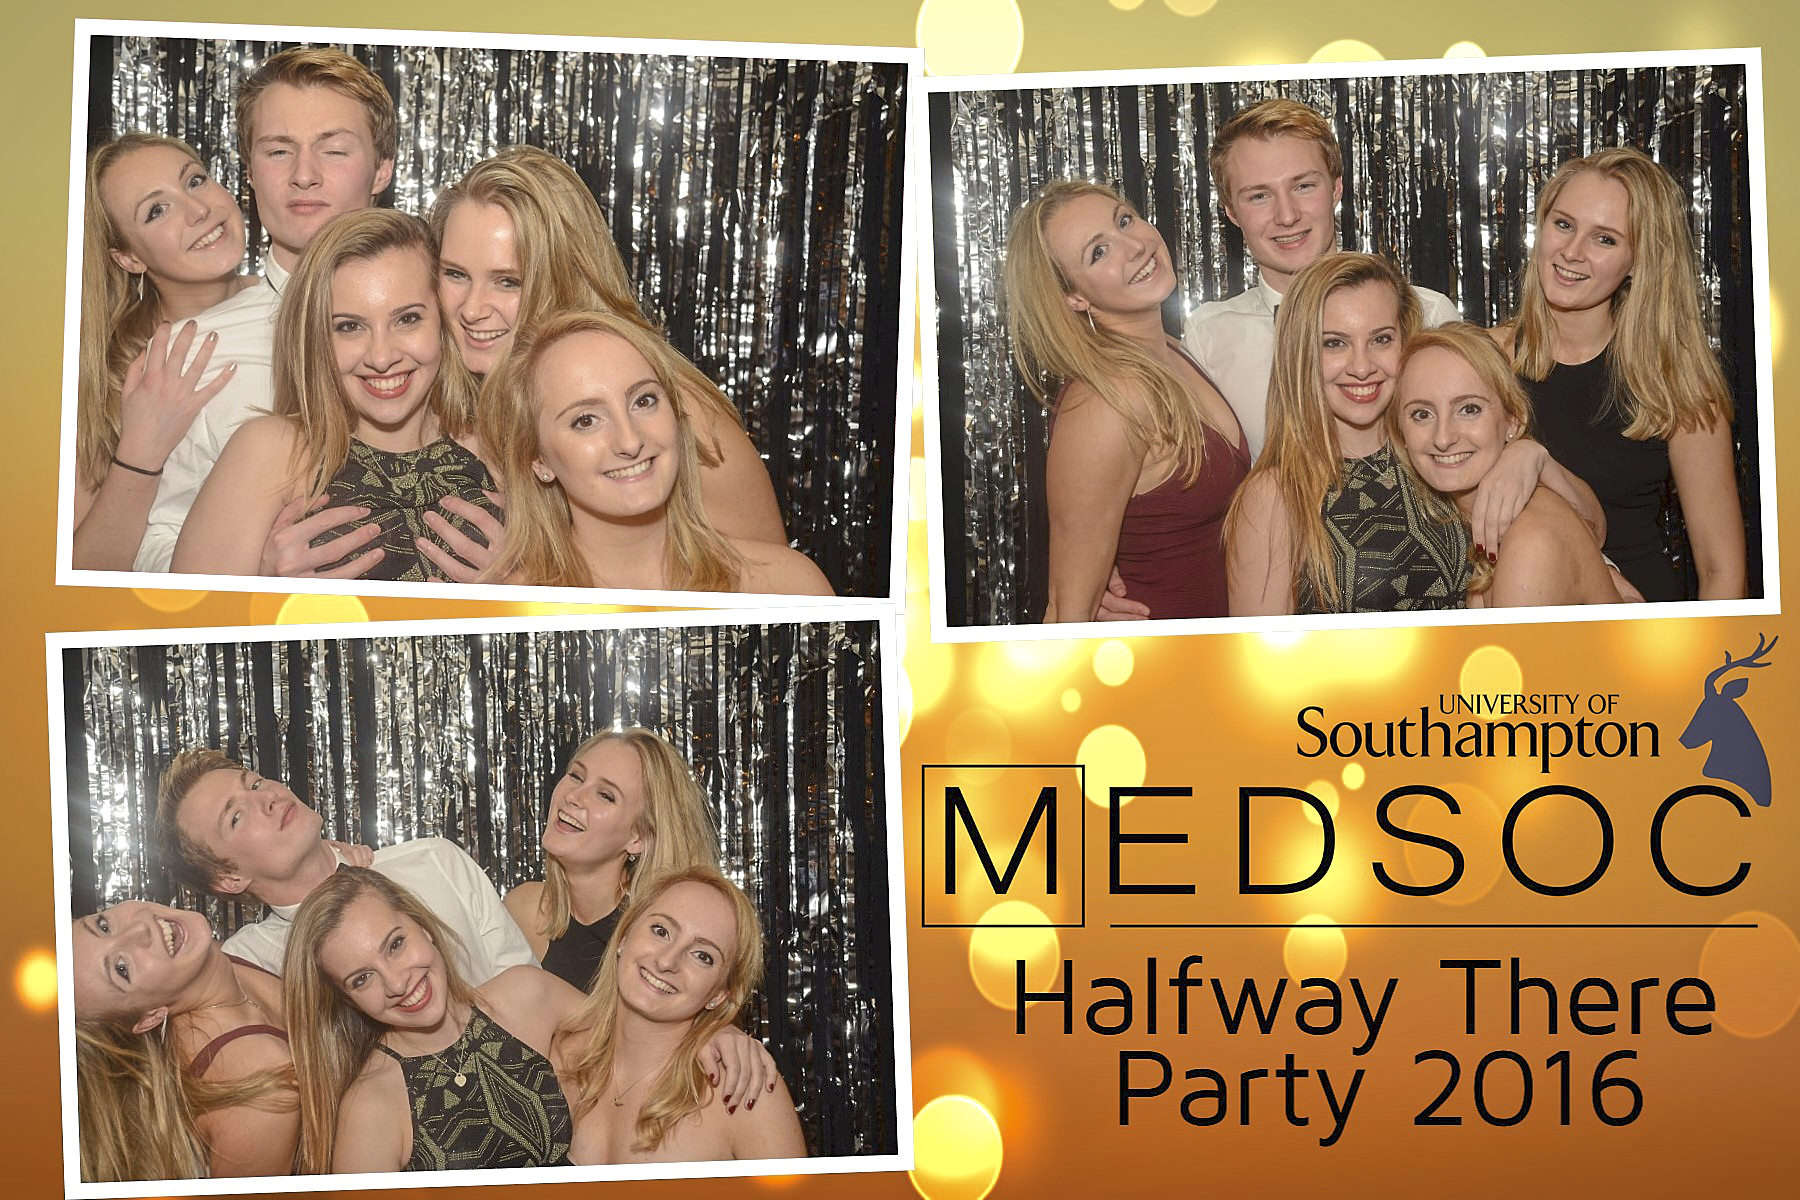 MedSoc Halfway There Party 2016 DS220025.jpg